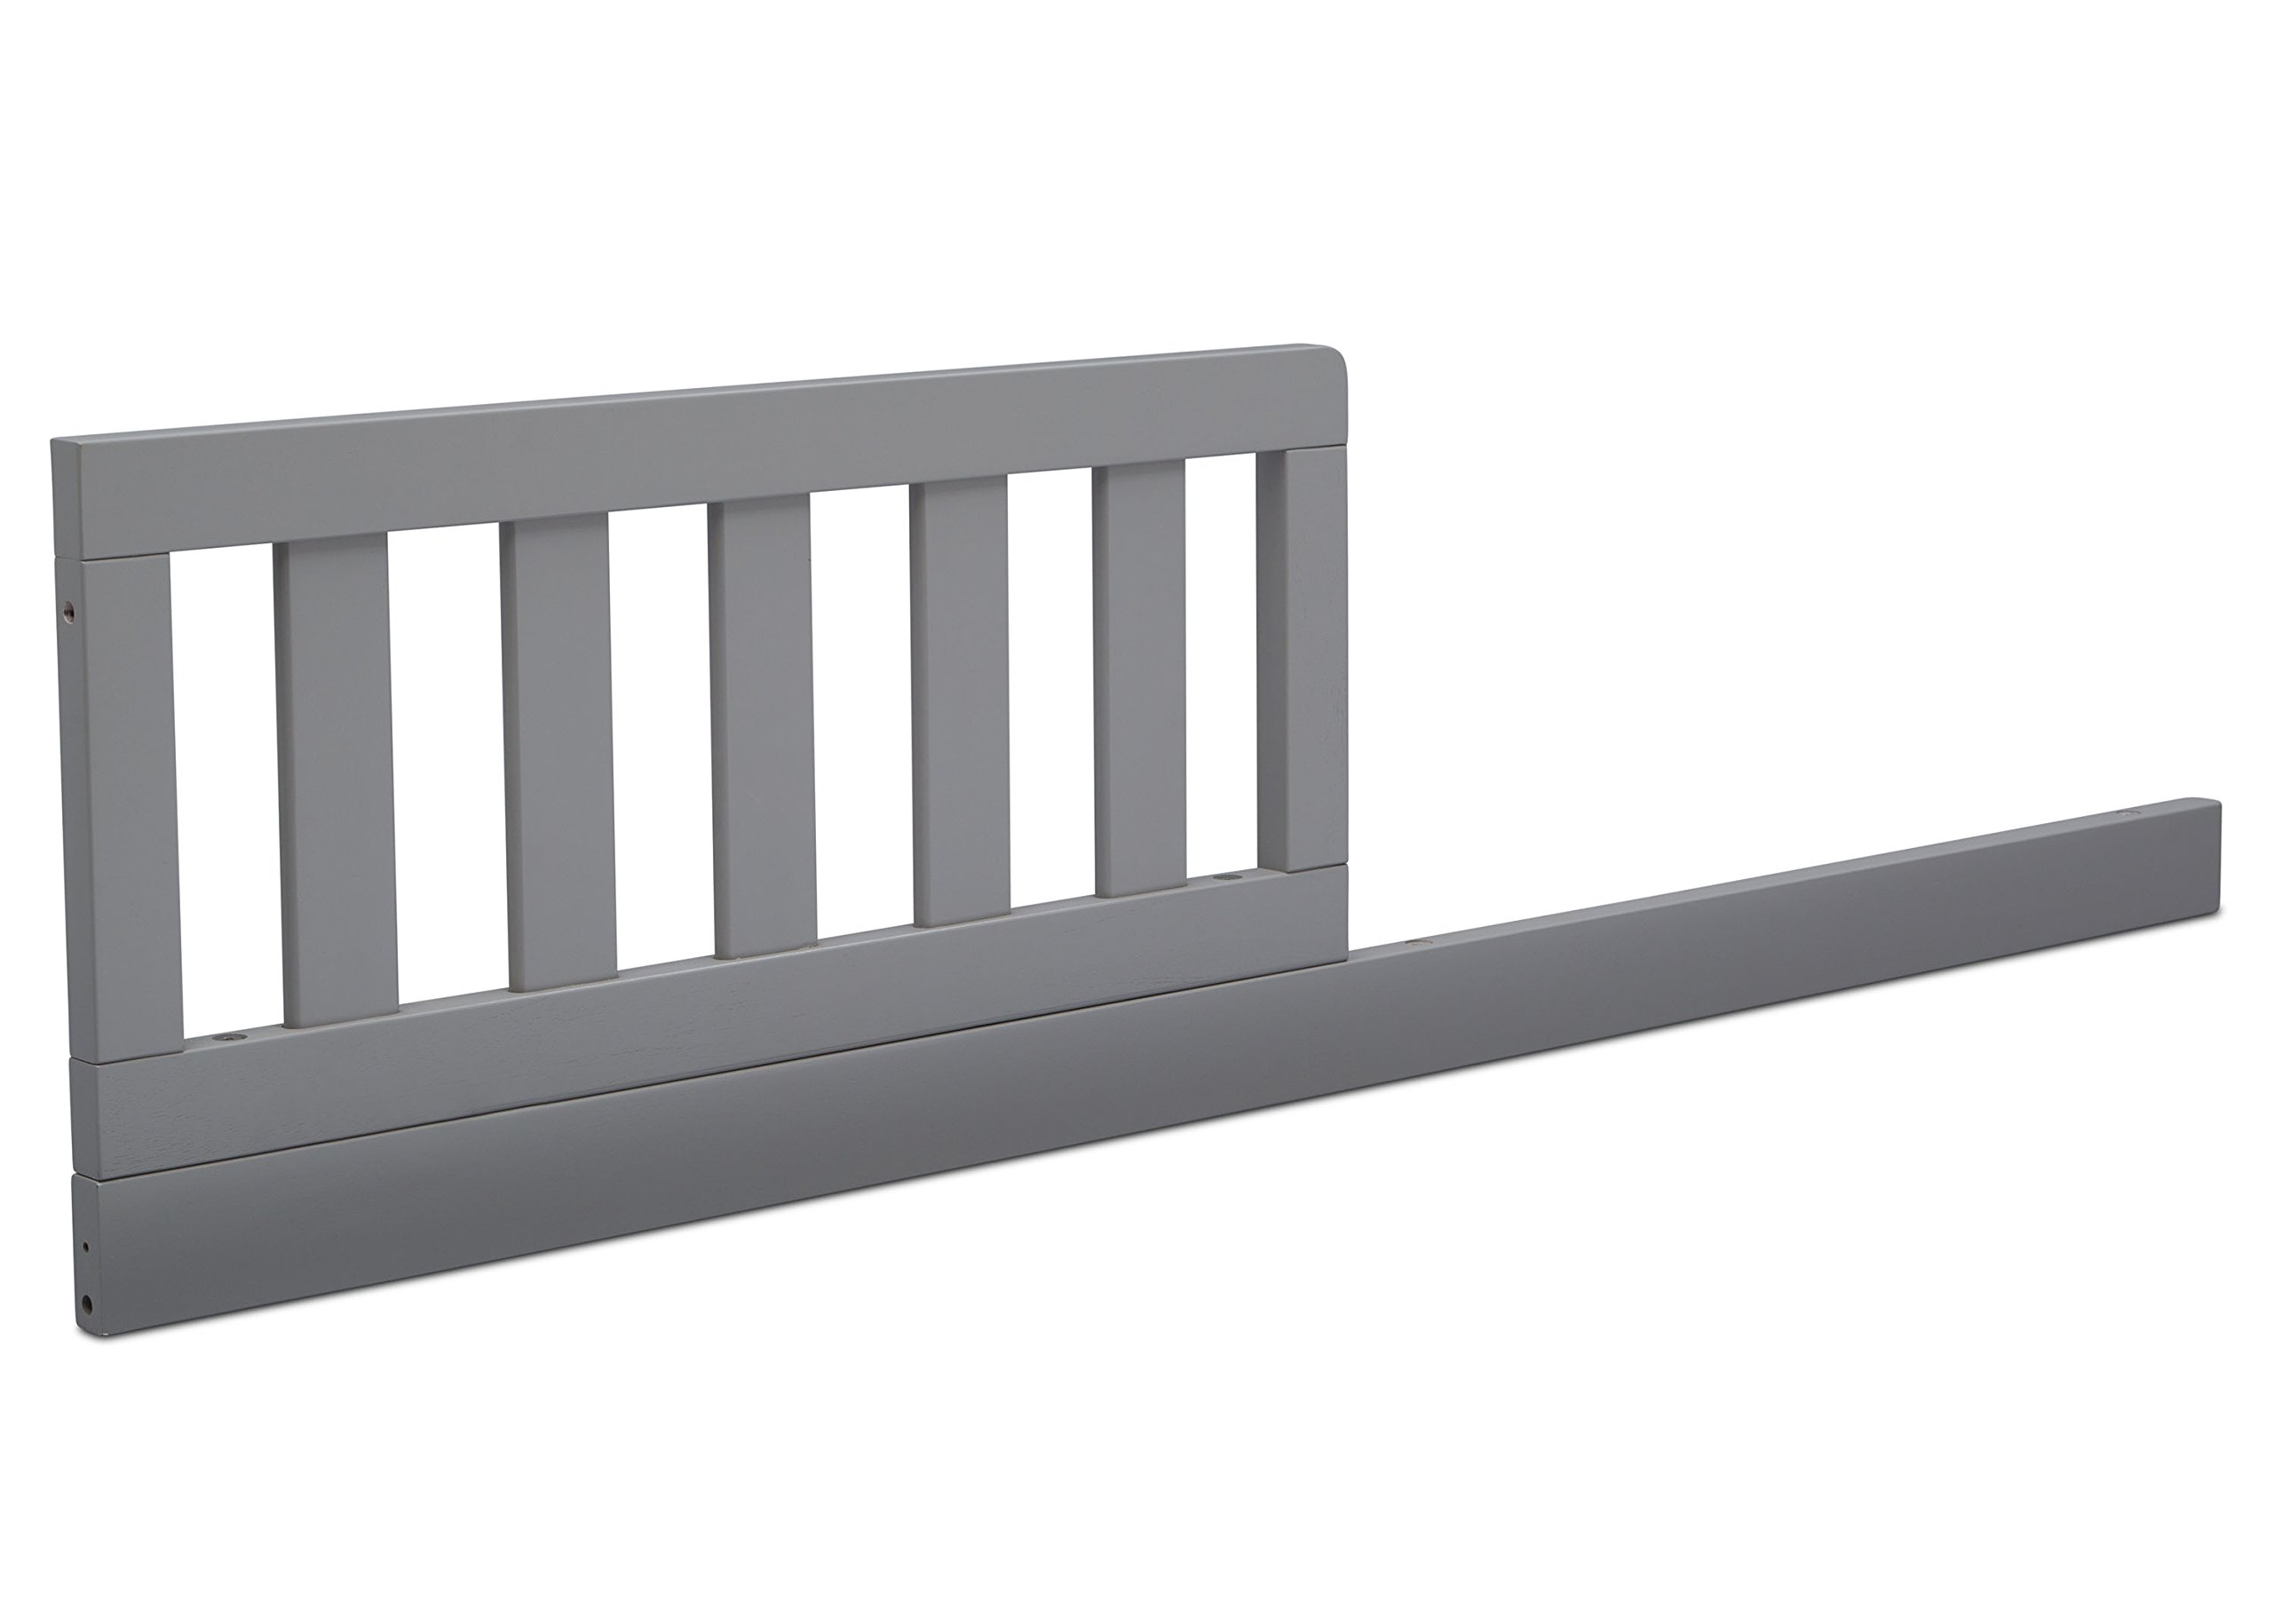 Serta Daybed/Toddler Guardrail Kit #707726, Grey by Serta